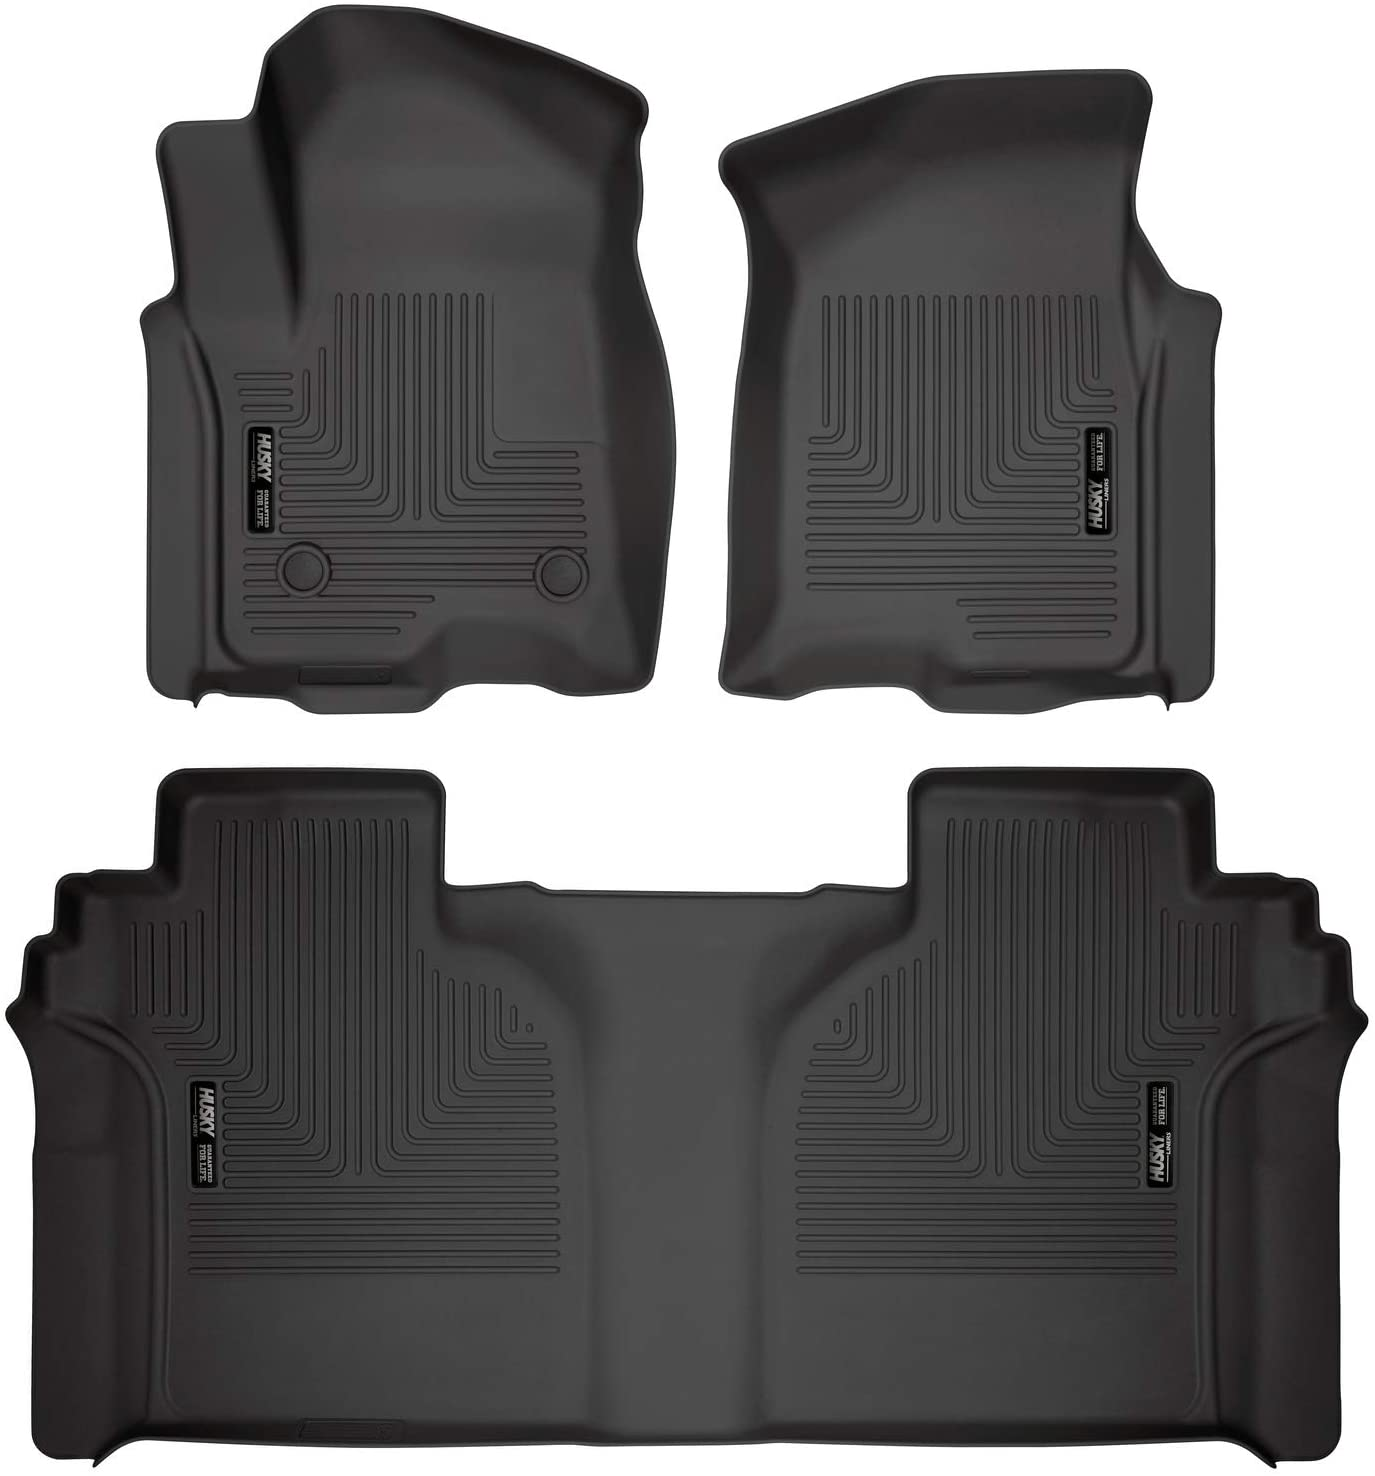 Husky Liners Fits 2019-20 Chevrolet Silverado/GMC Sierra 1500 Crew Cab – with Carpeted Factory Storage Box Weatherbeater Front & 2nd Seat Floor Mats,Black,94021